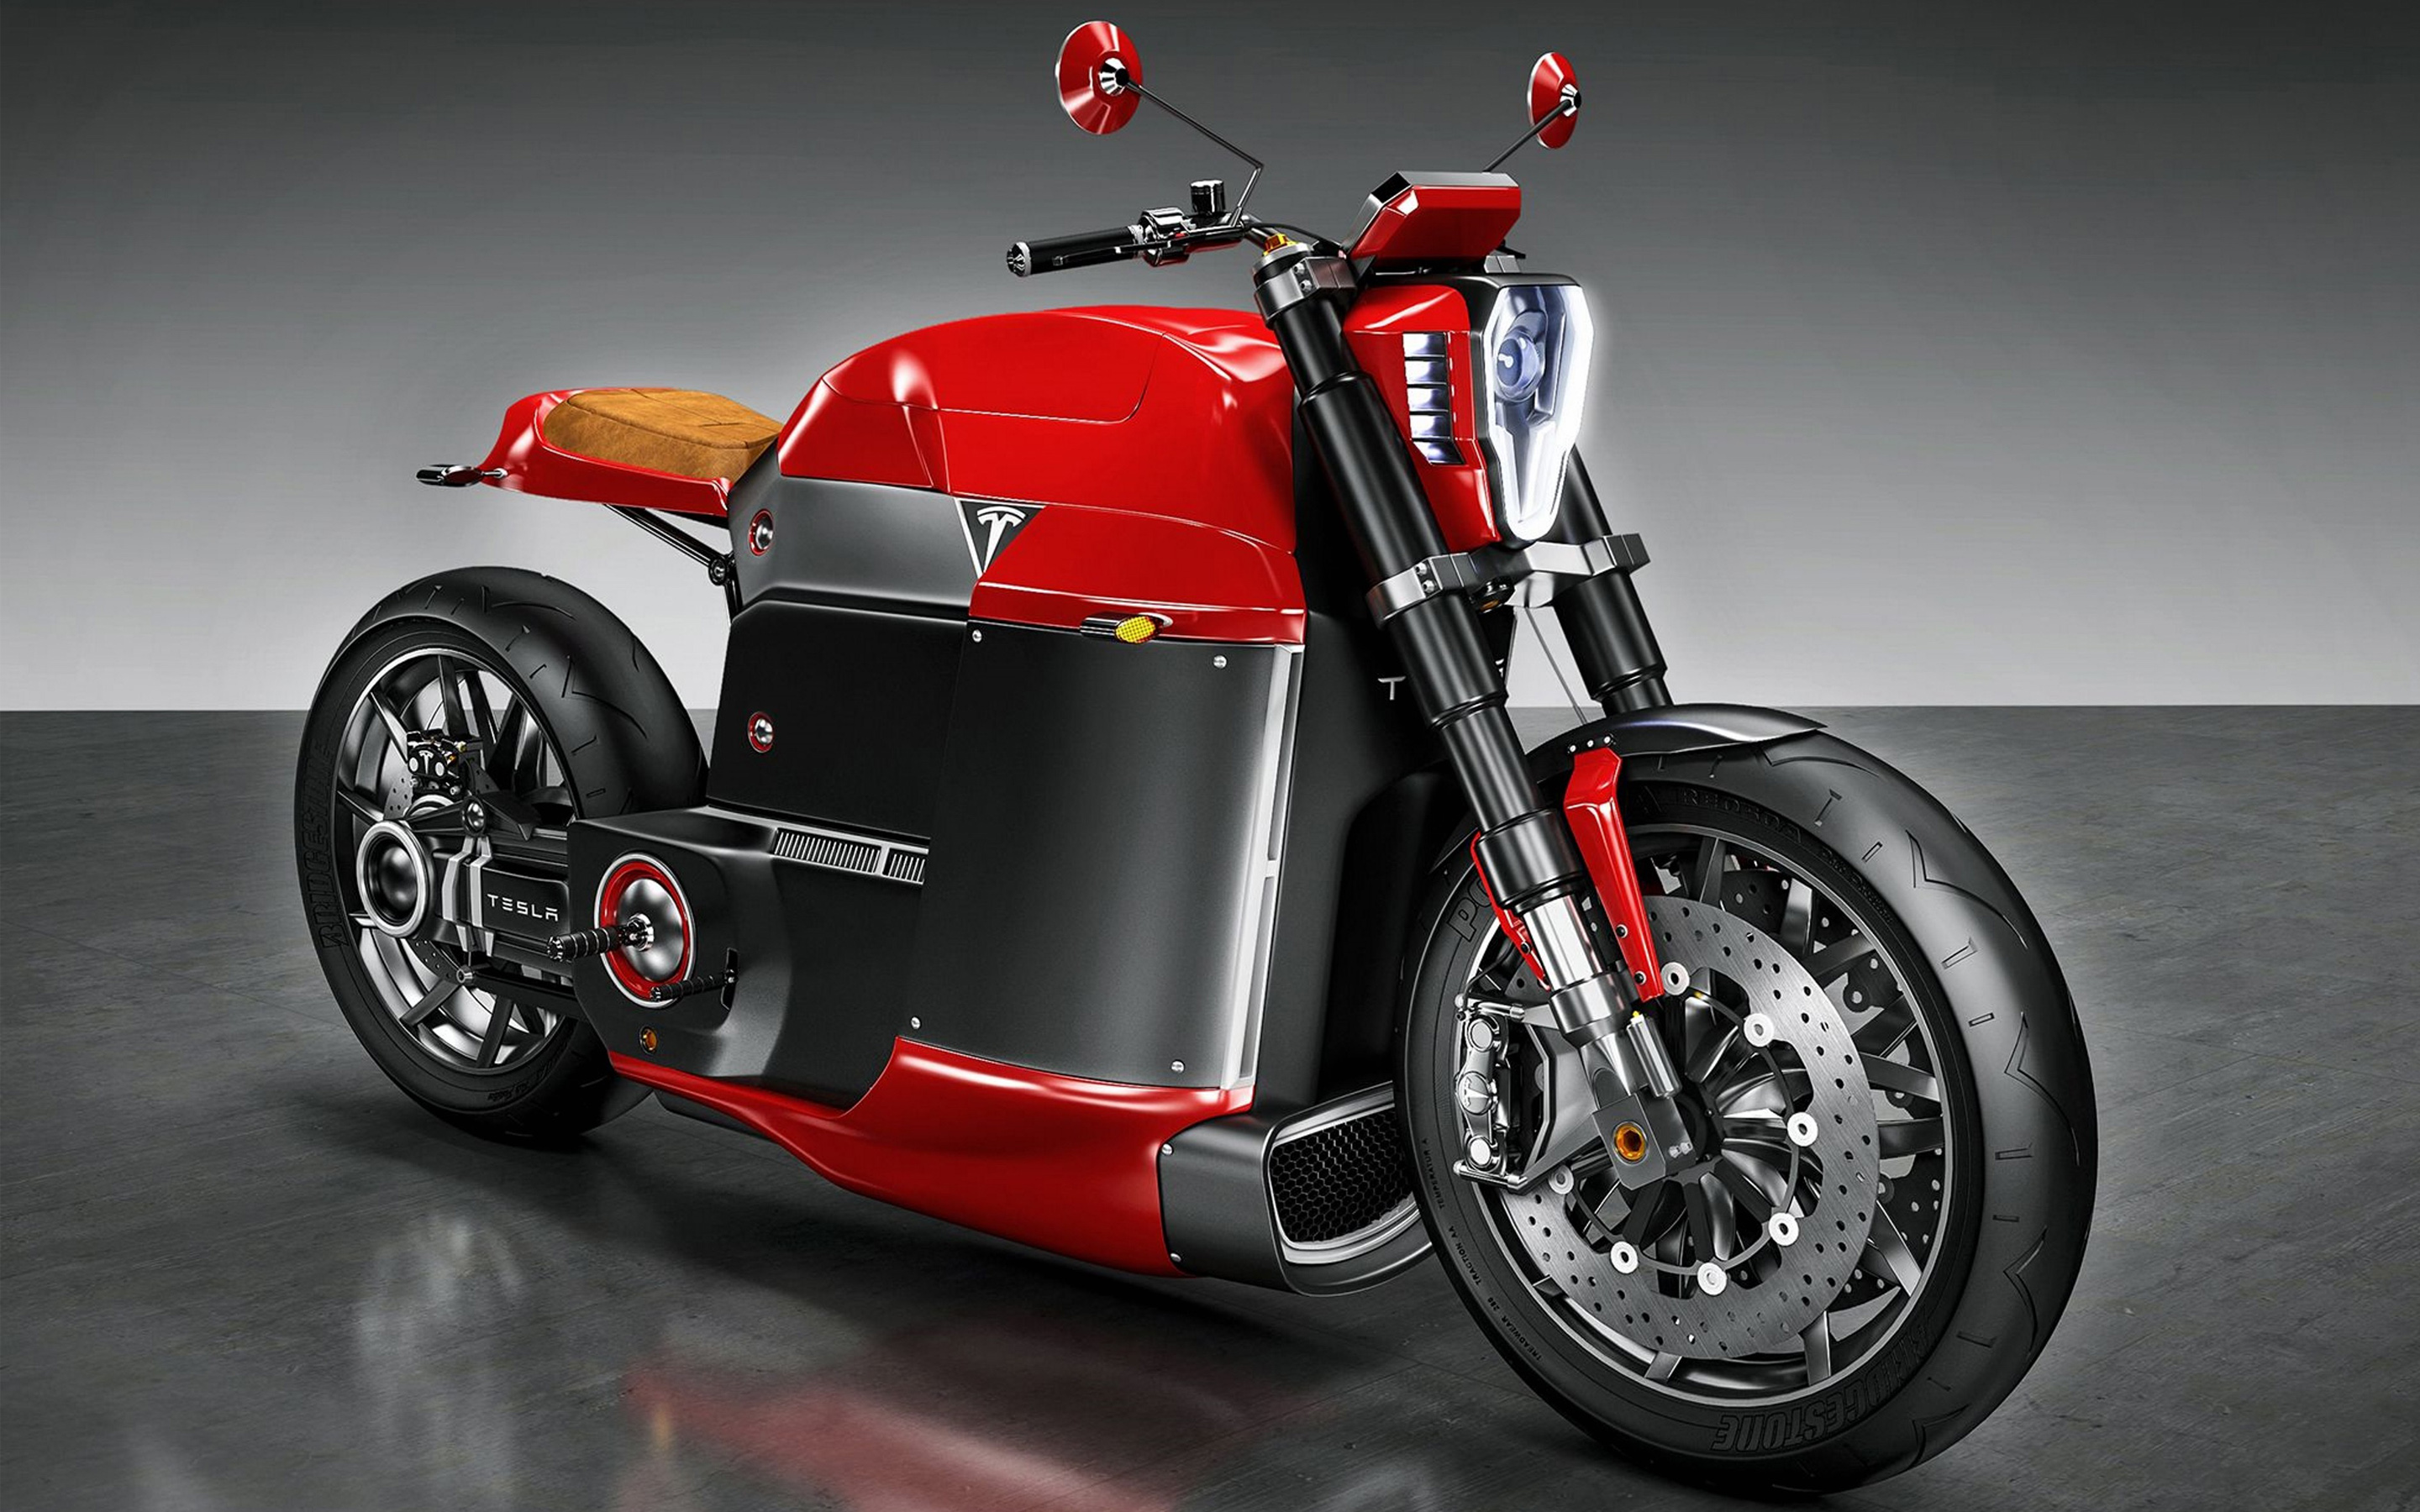 Tesla Model M Concept Electric Motorcycle923849575 - Tesla Model M Concept Electric Motorcycle - Tesla, Motorcycle, Model, Electric, DraXter, Concept